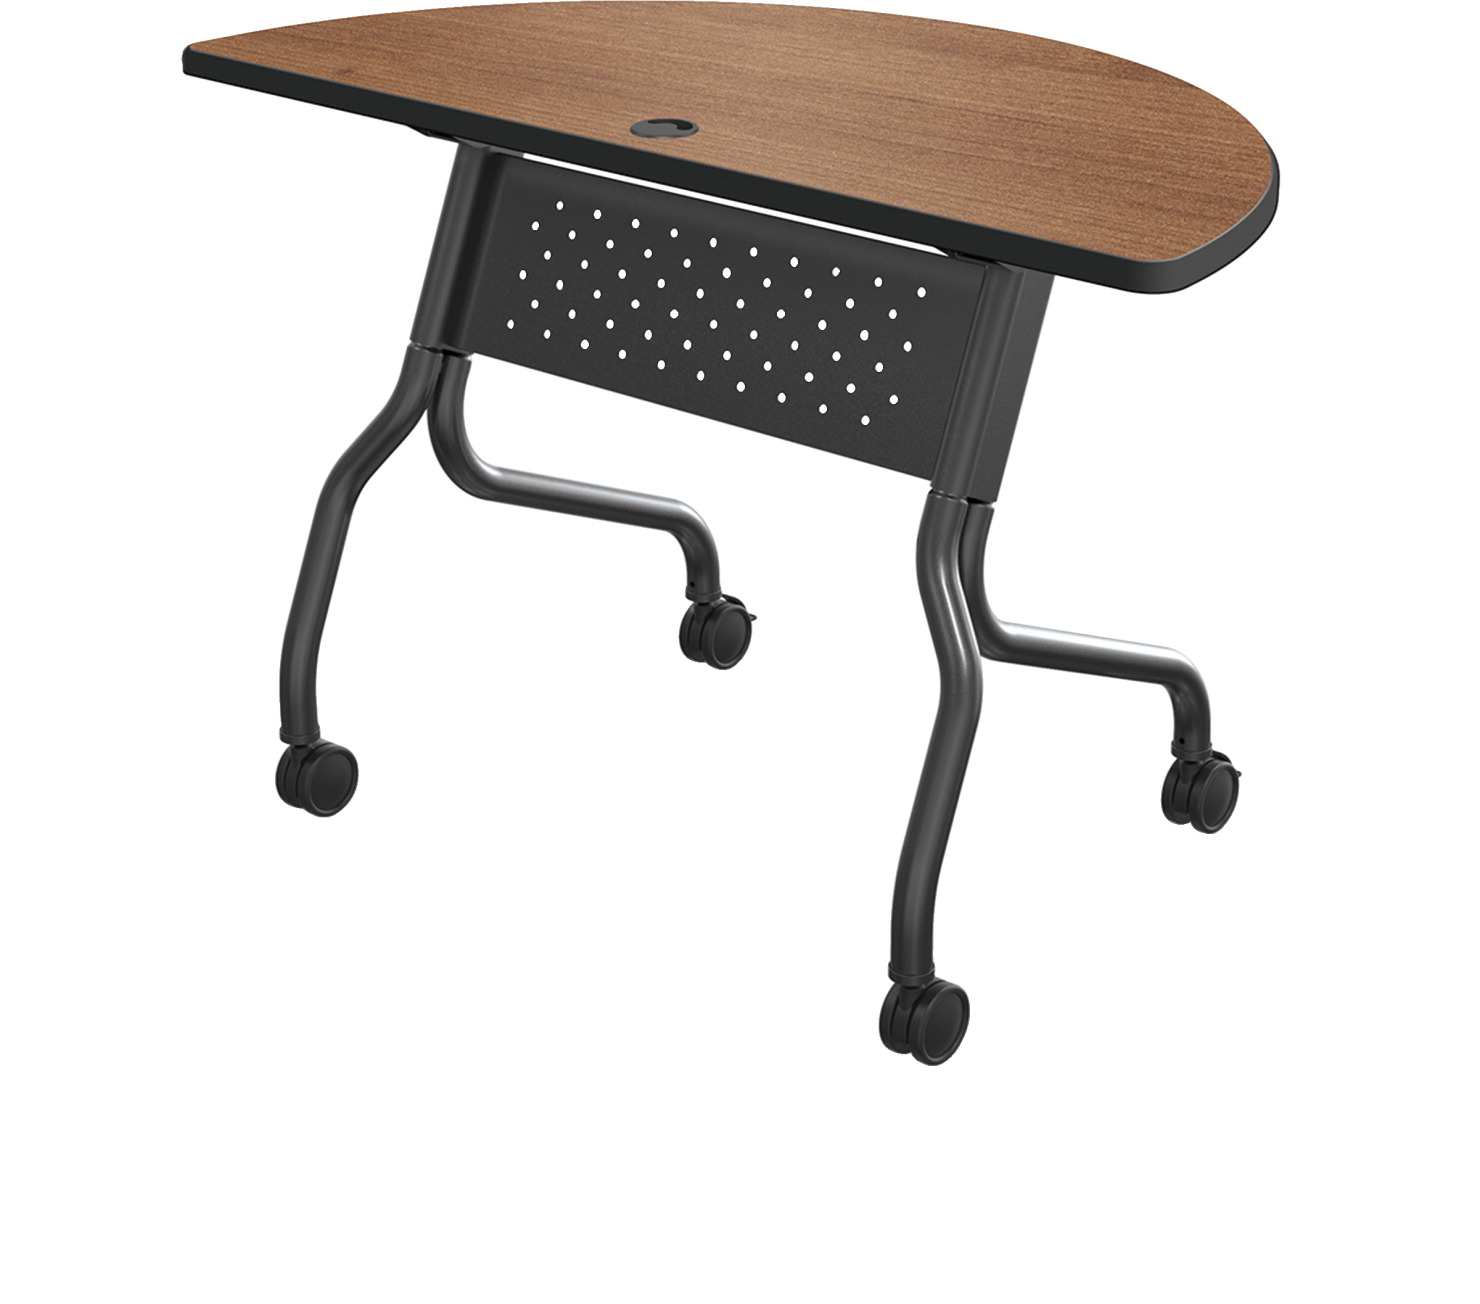 Flipper Computer Table SOAR Life Products - Lorell flipper training table